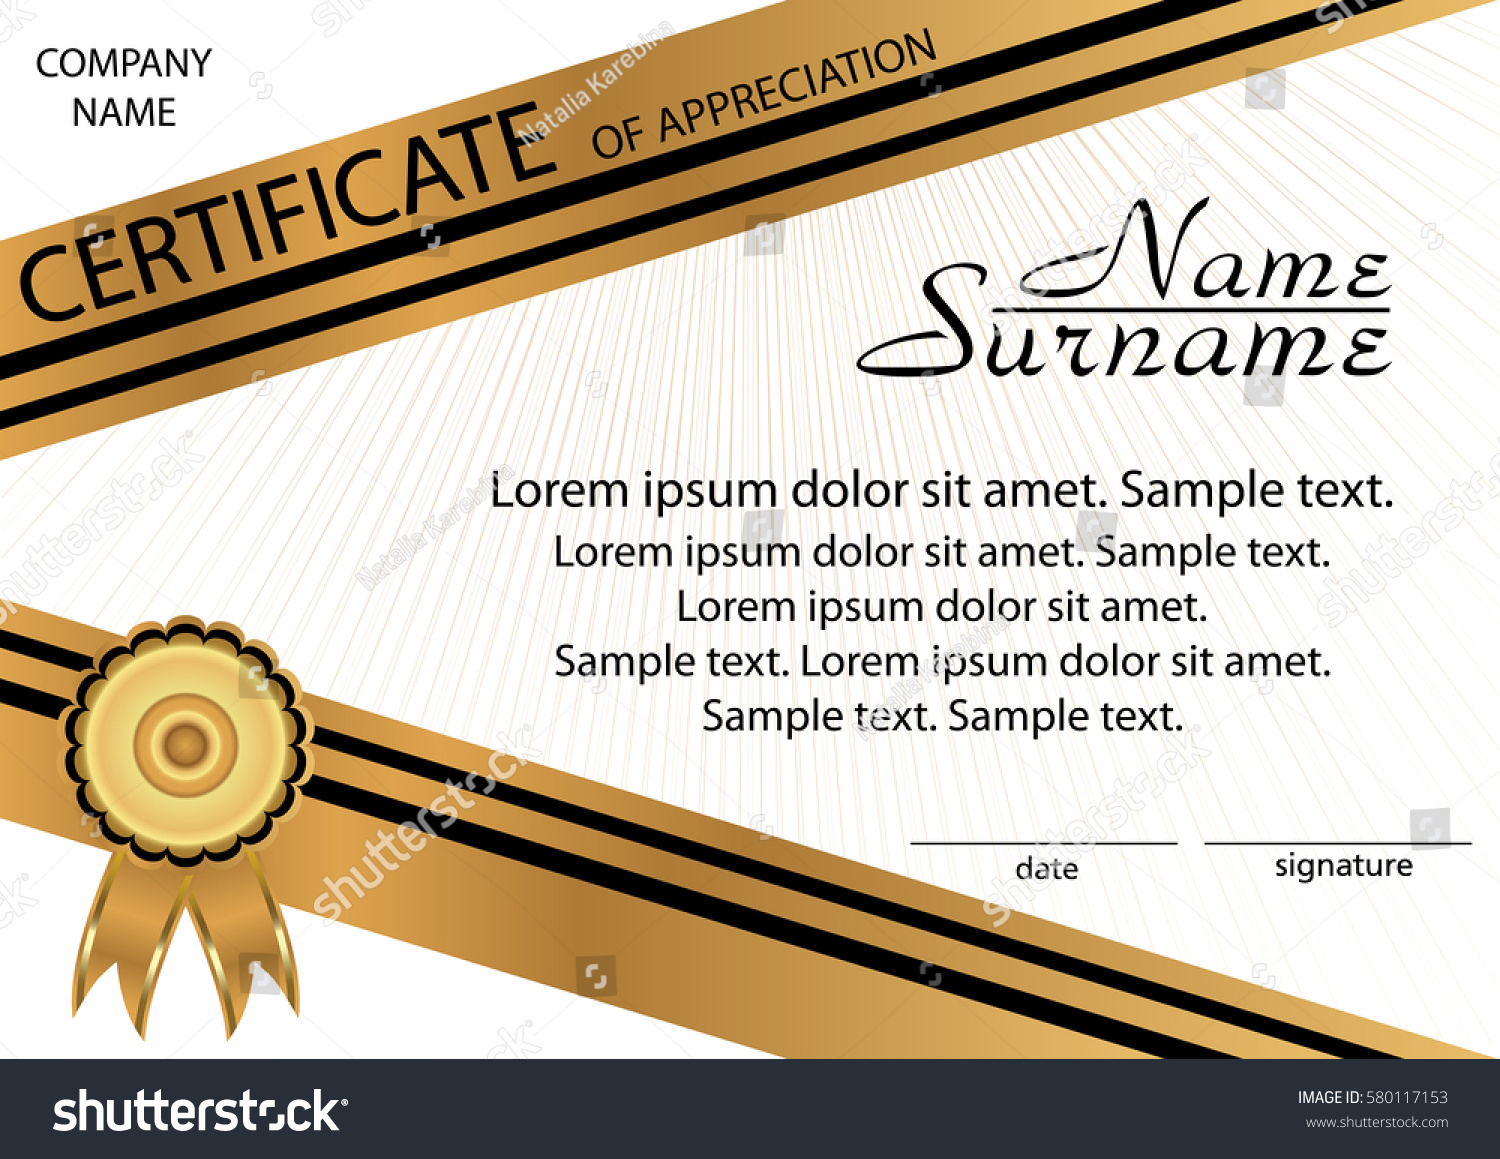 Certificate of appreciation examples action wedding invitation certificates of appreciation wording samples individual action stock vector gold and black template certificate of appreciation yadclub Choice Image